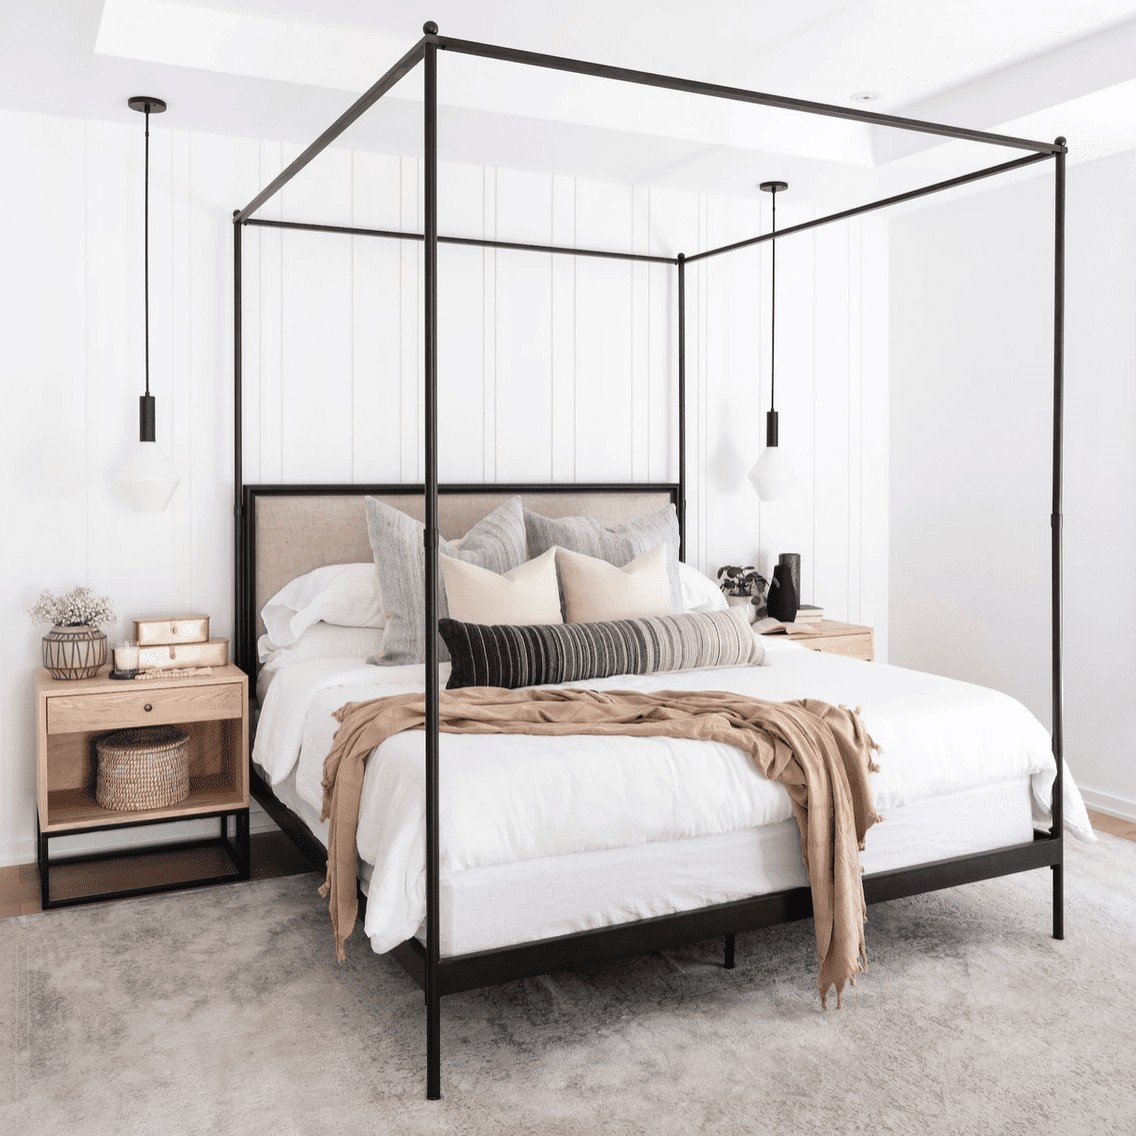 A minimalist bedroom with two industrial pendant lights